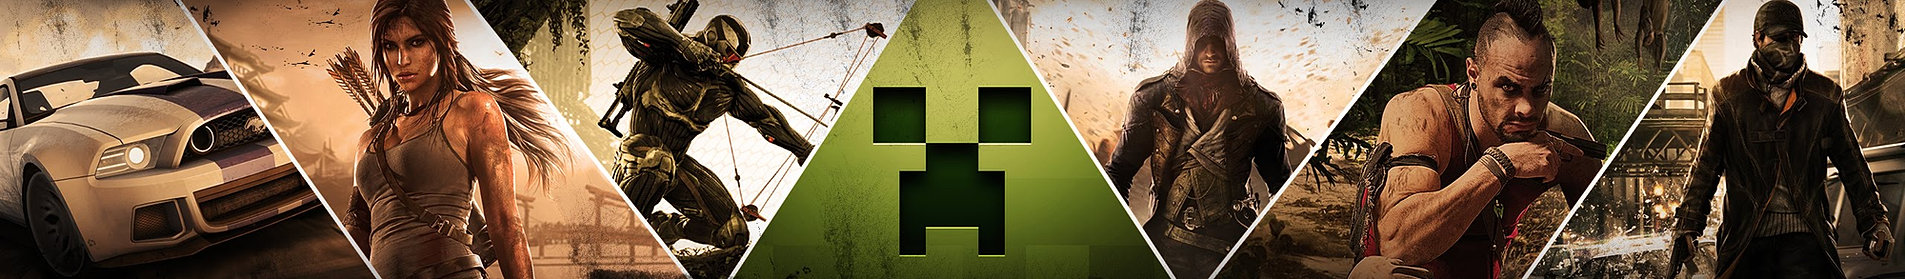 Rust game server how to set up map siz